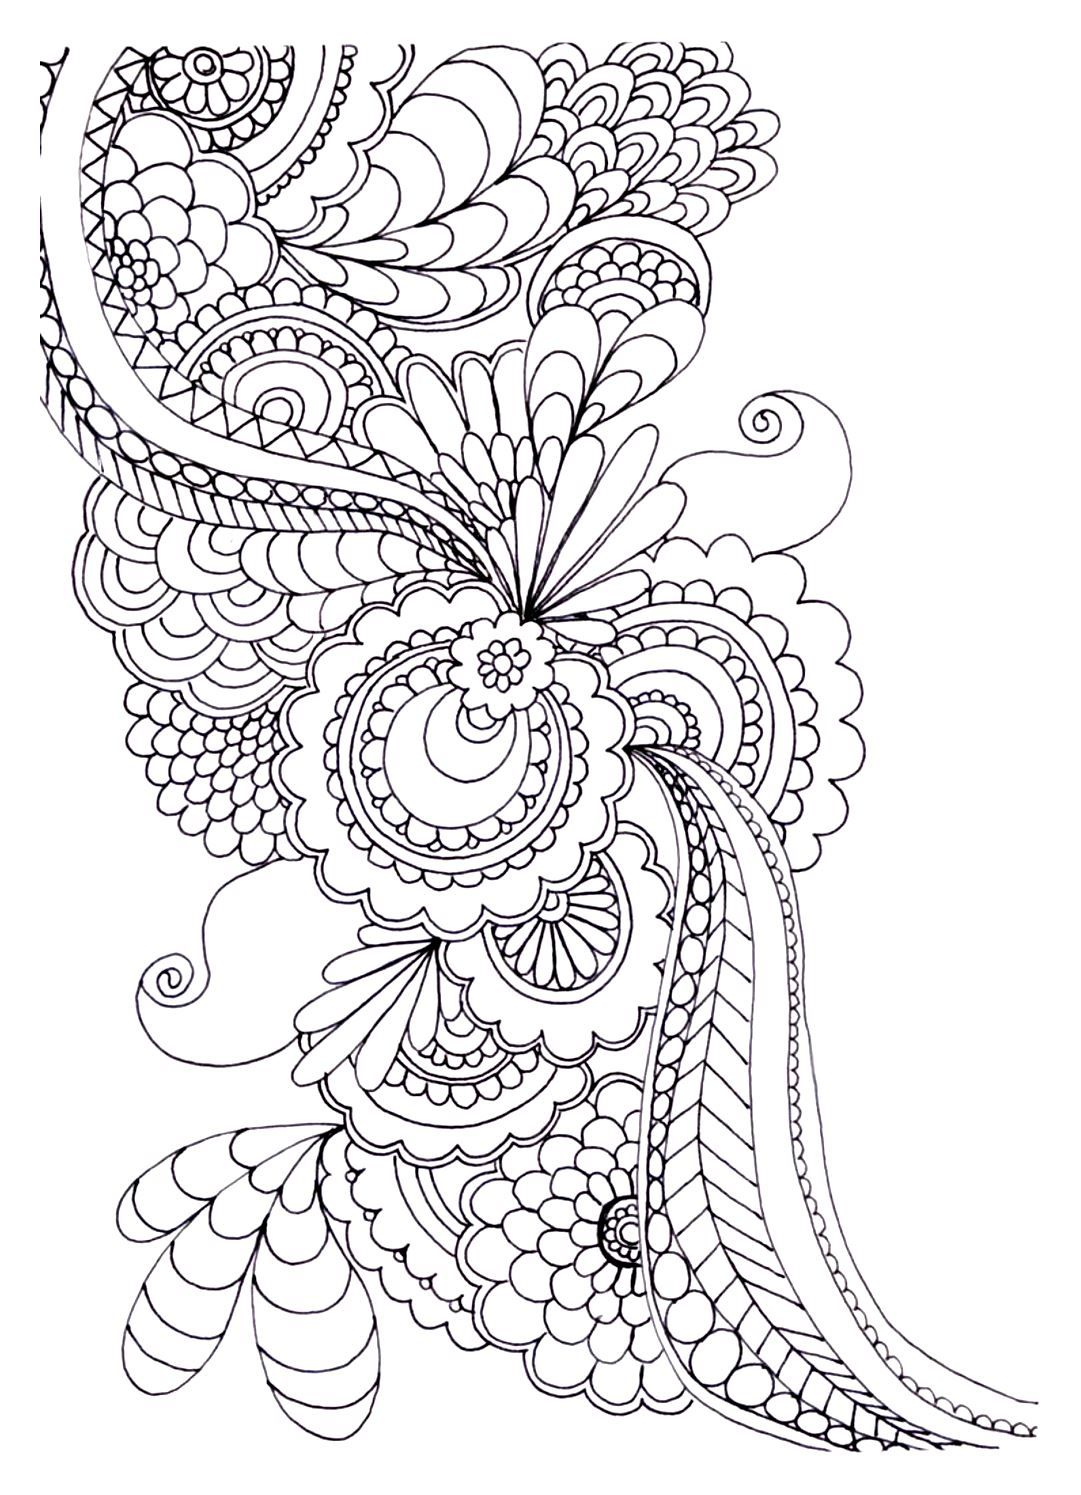 Coloring pictures to print of flowers - Free Coloring Page Coloring Adult Zen Anti Stress To Print Drawing Flowers Coloring Adult Zen Anti Stress To Print Drawing Flowers